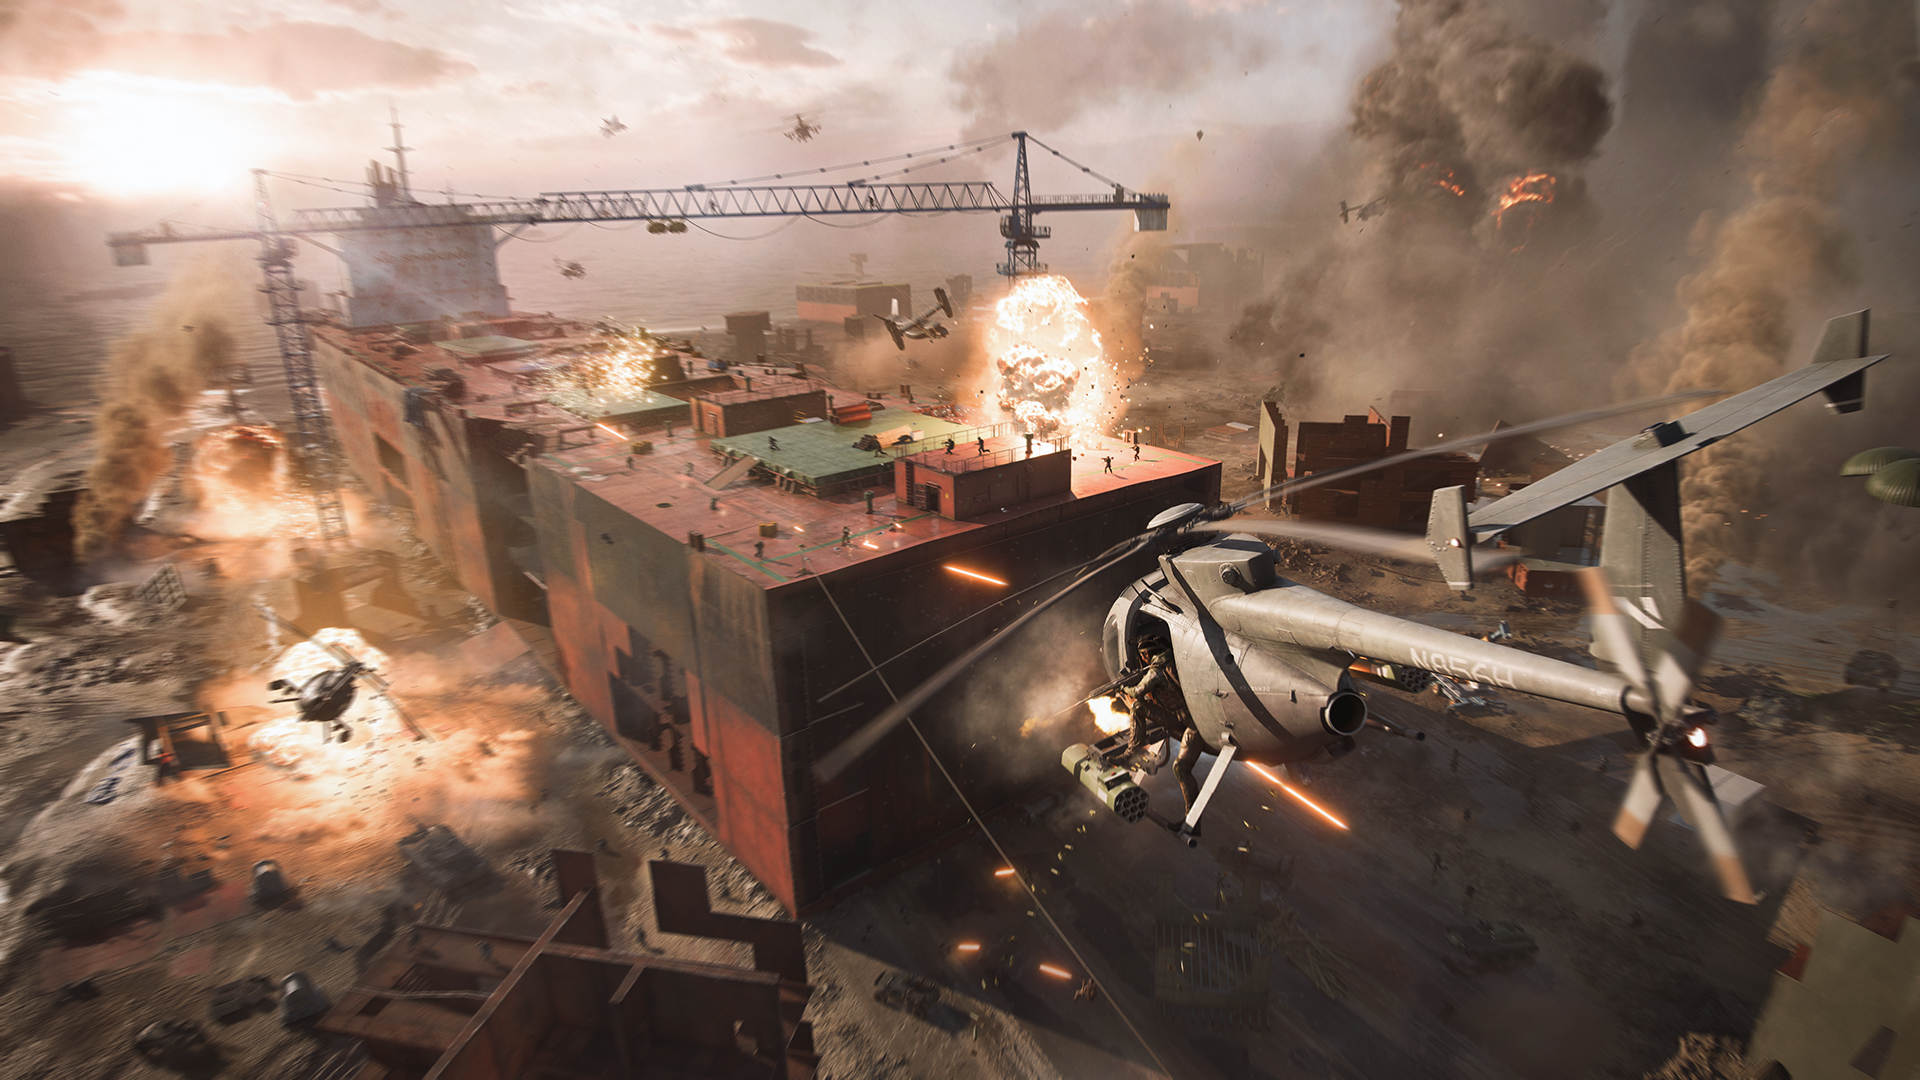 Helicopter Image from Battlefield 2042